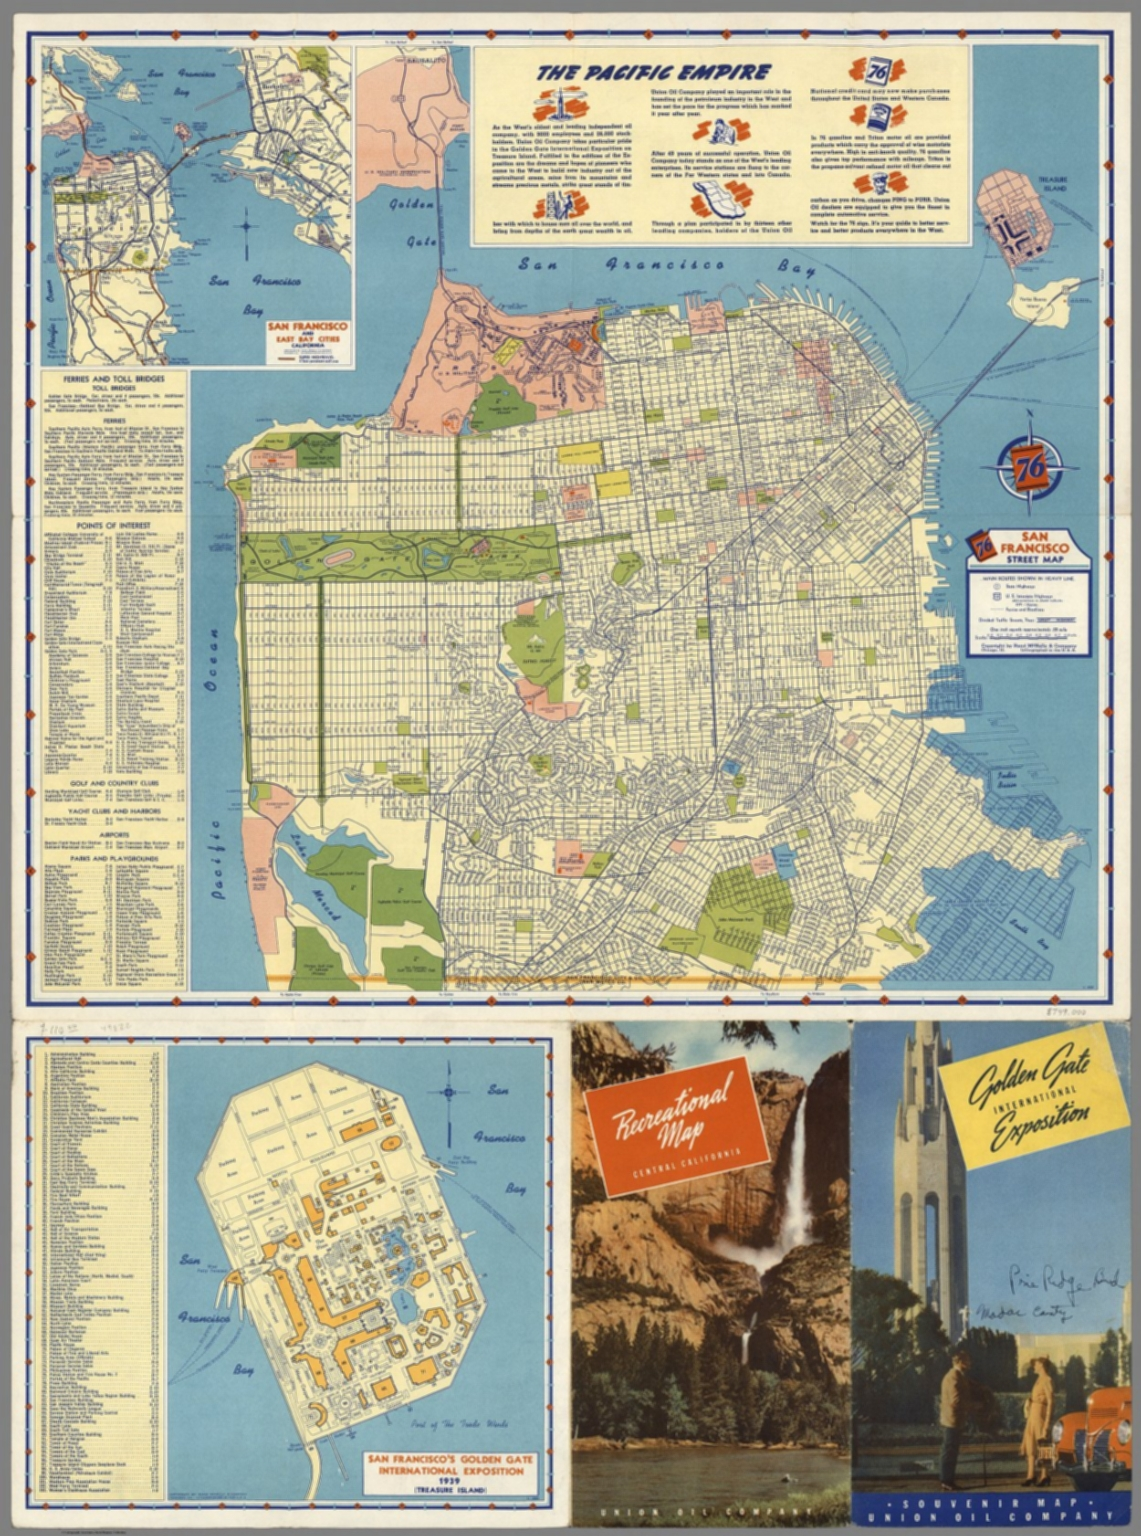 San Francisco Street Map The Pacific Empire Golden Gate